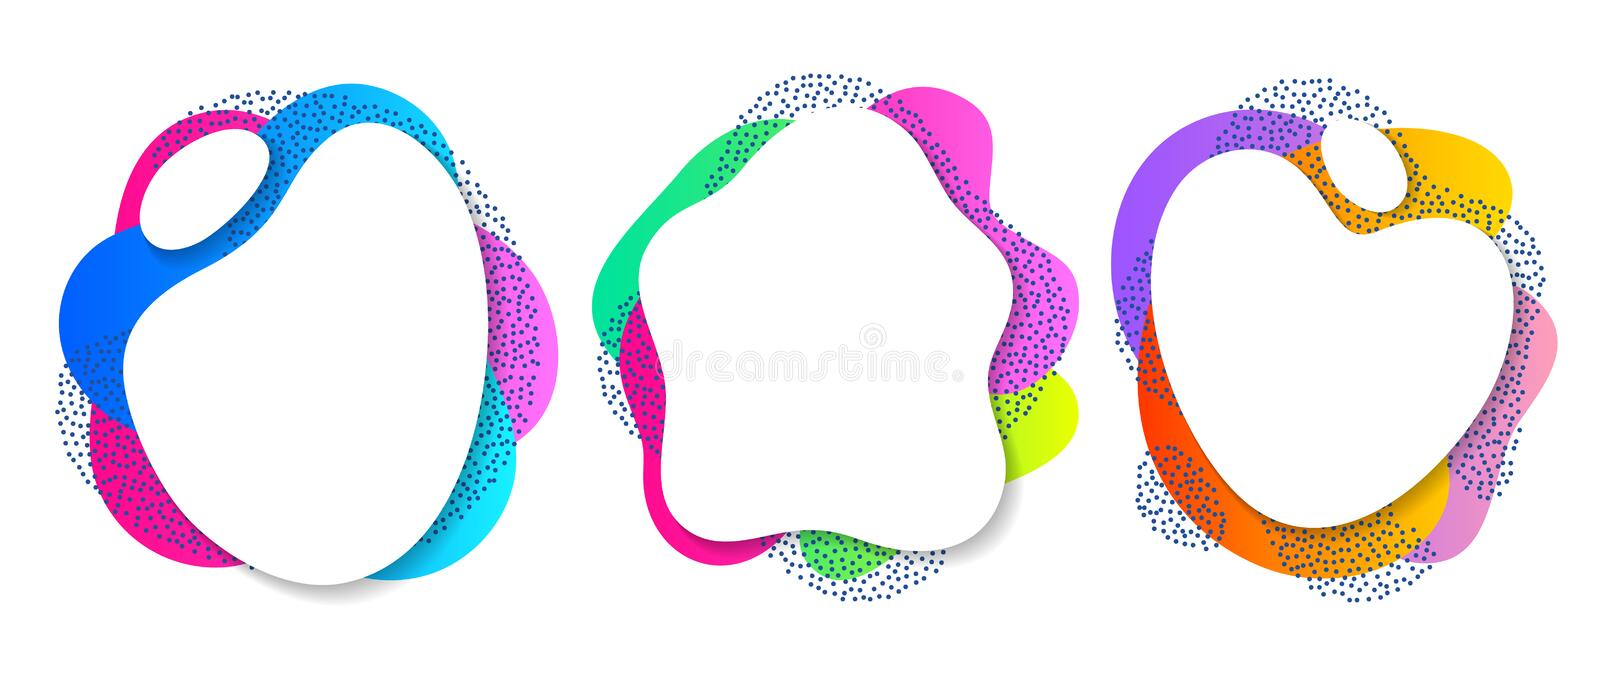 Colorful liquid shapes set. Abstract fluid blobs. Colorful liquid shapes set. Abstract fluid blobs background stock illustration